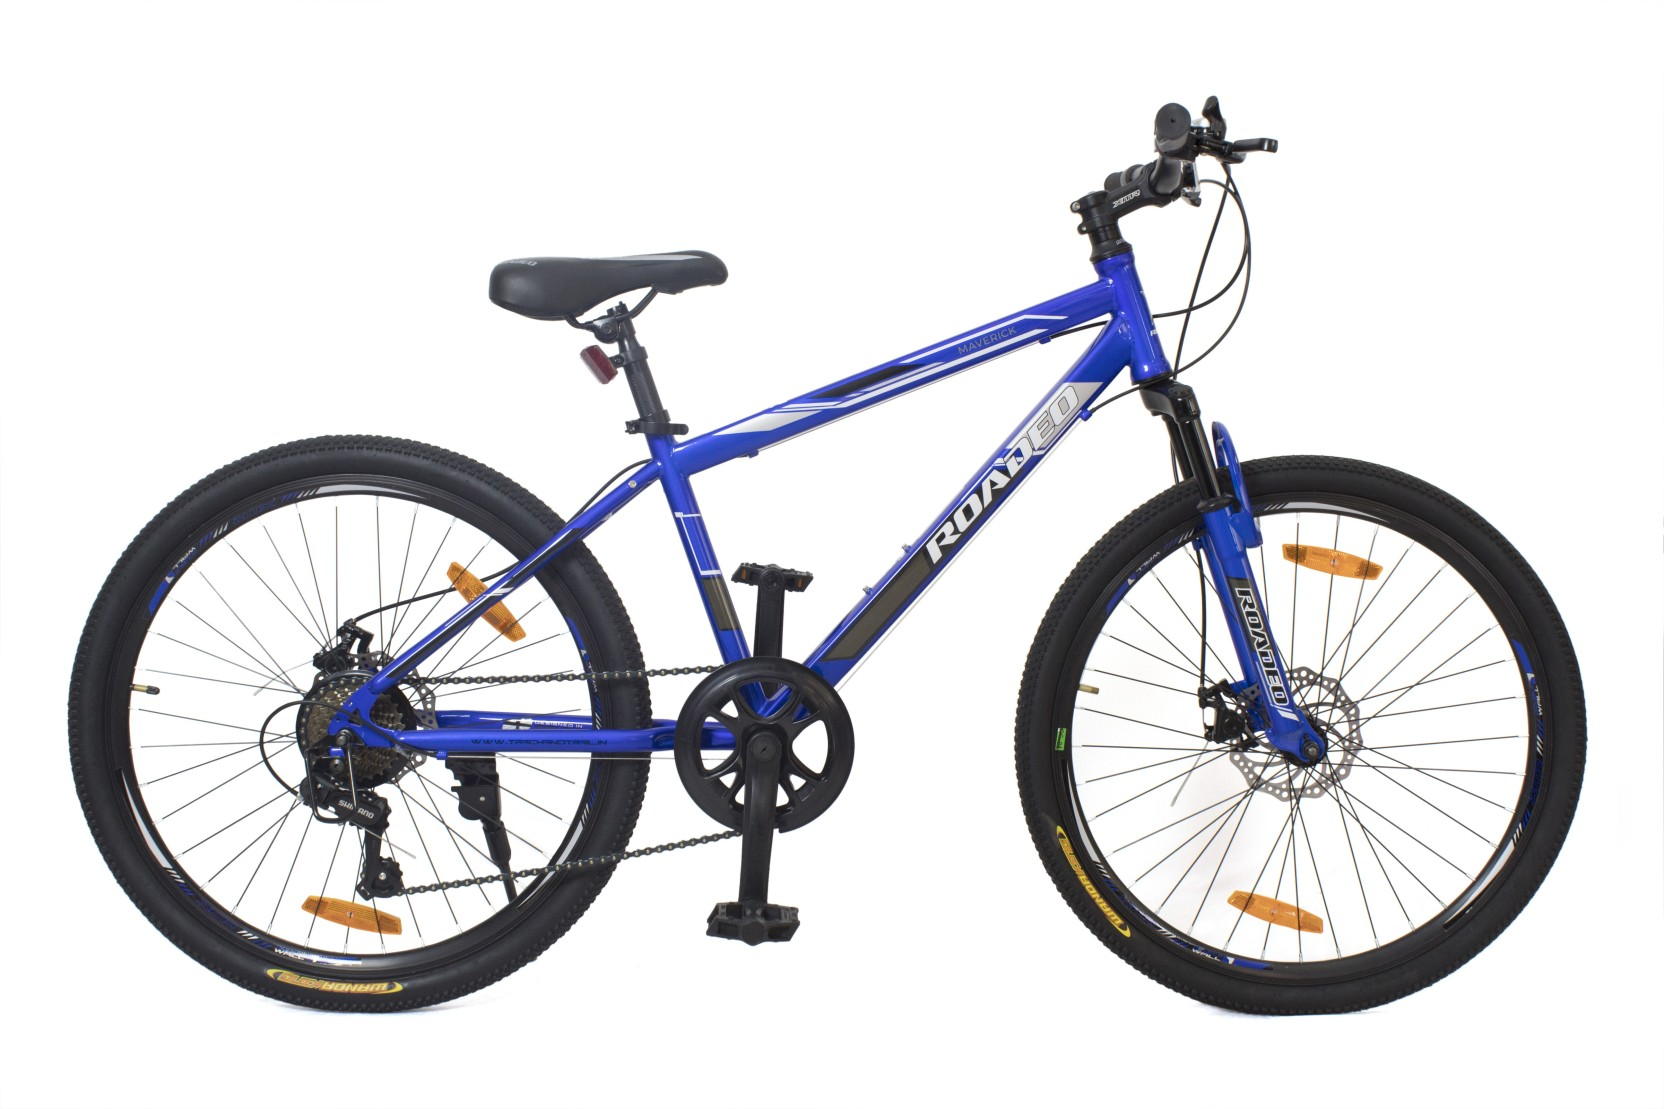 Hercules Roadeo Maverick 26 T Mountain Hardtail Cycle Price In India Seat Post Suspension Zoom Ready Size 316 Add To Cart